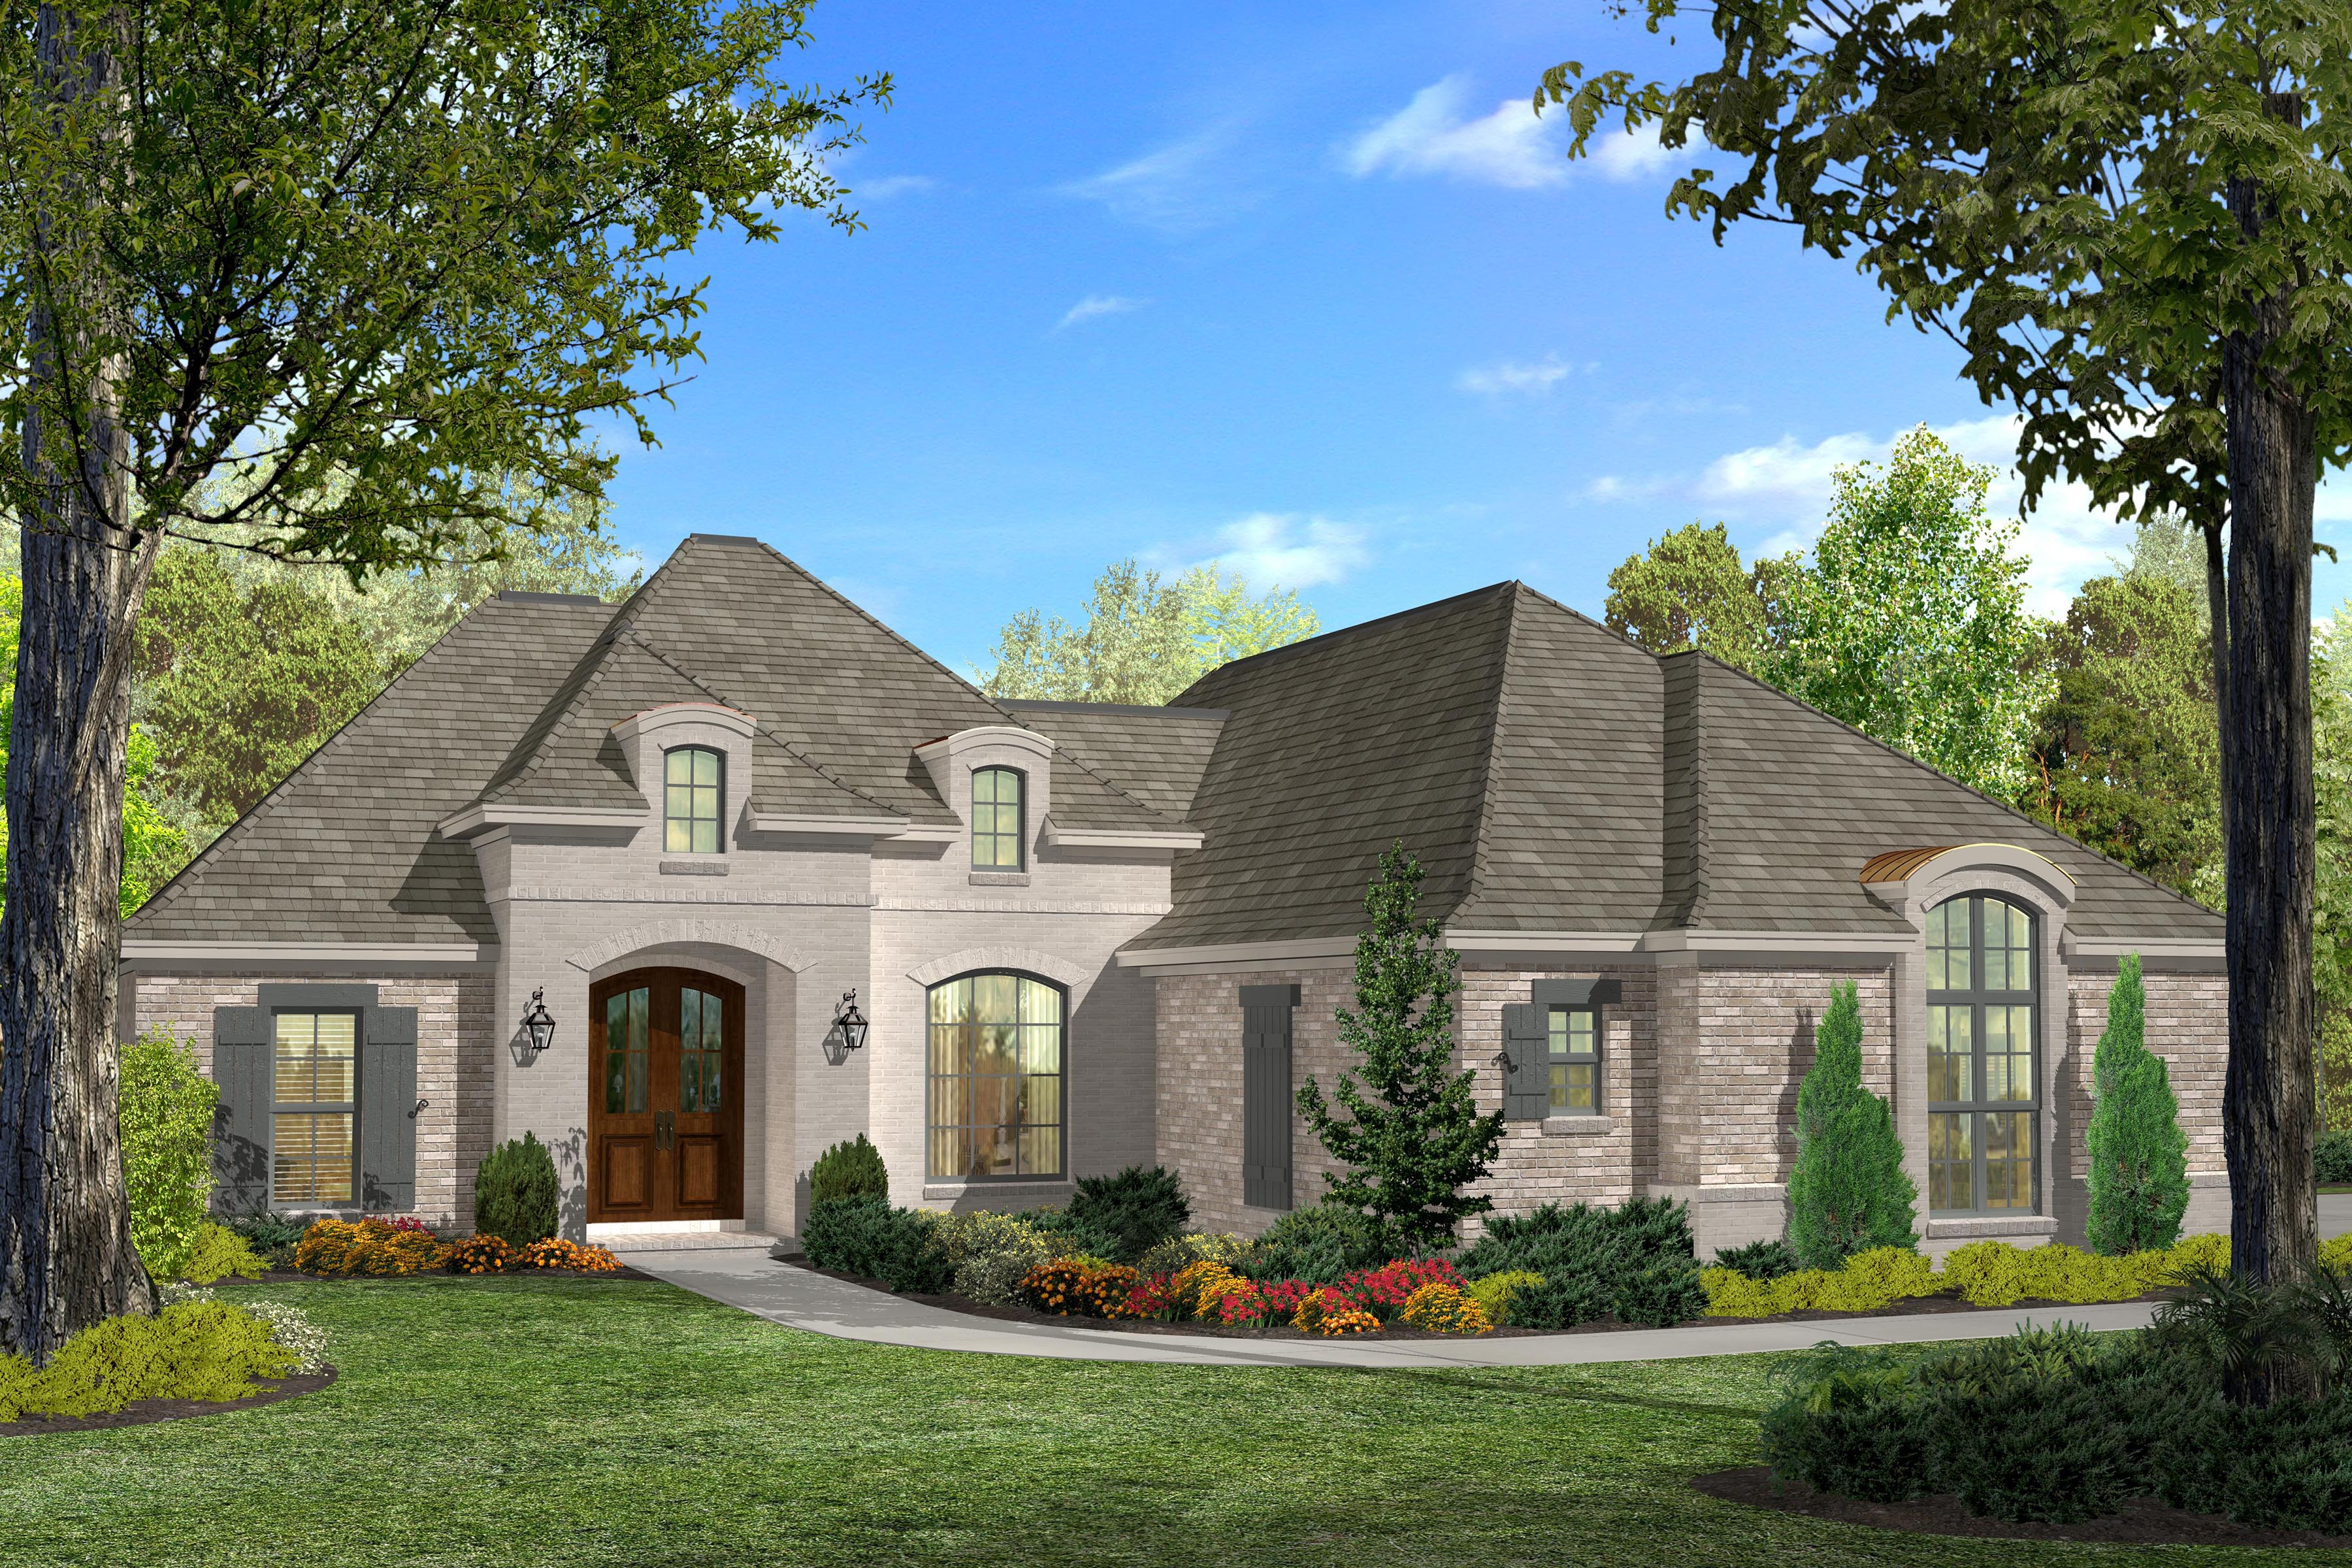 Acadian House Plan #142-1124: 3 Bedrm, 1937 Sq Ft Home